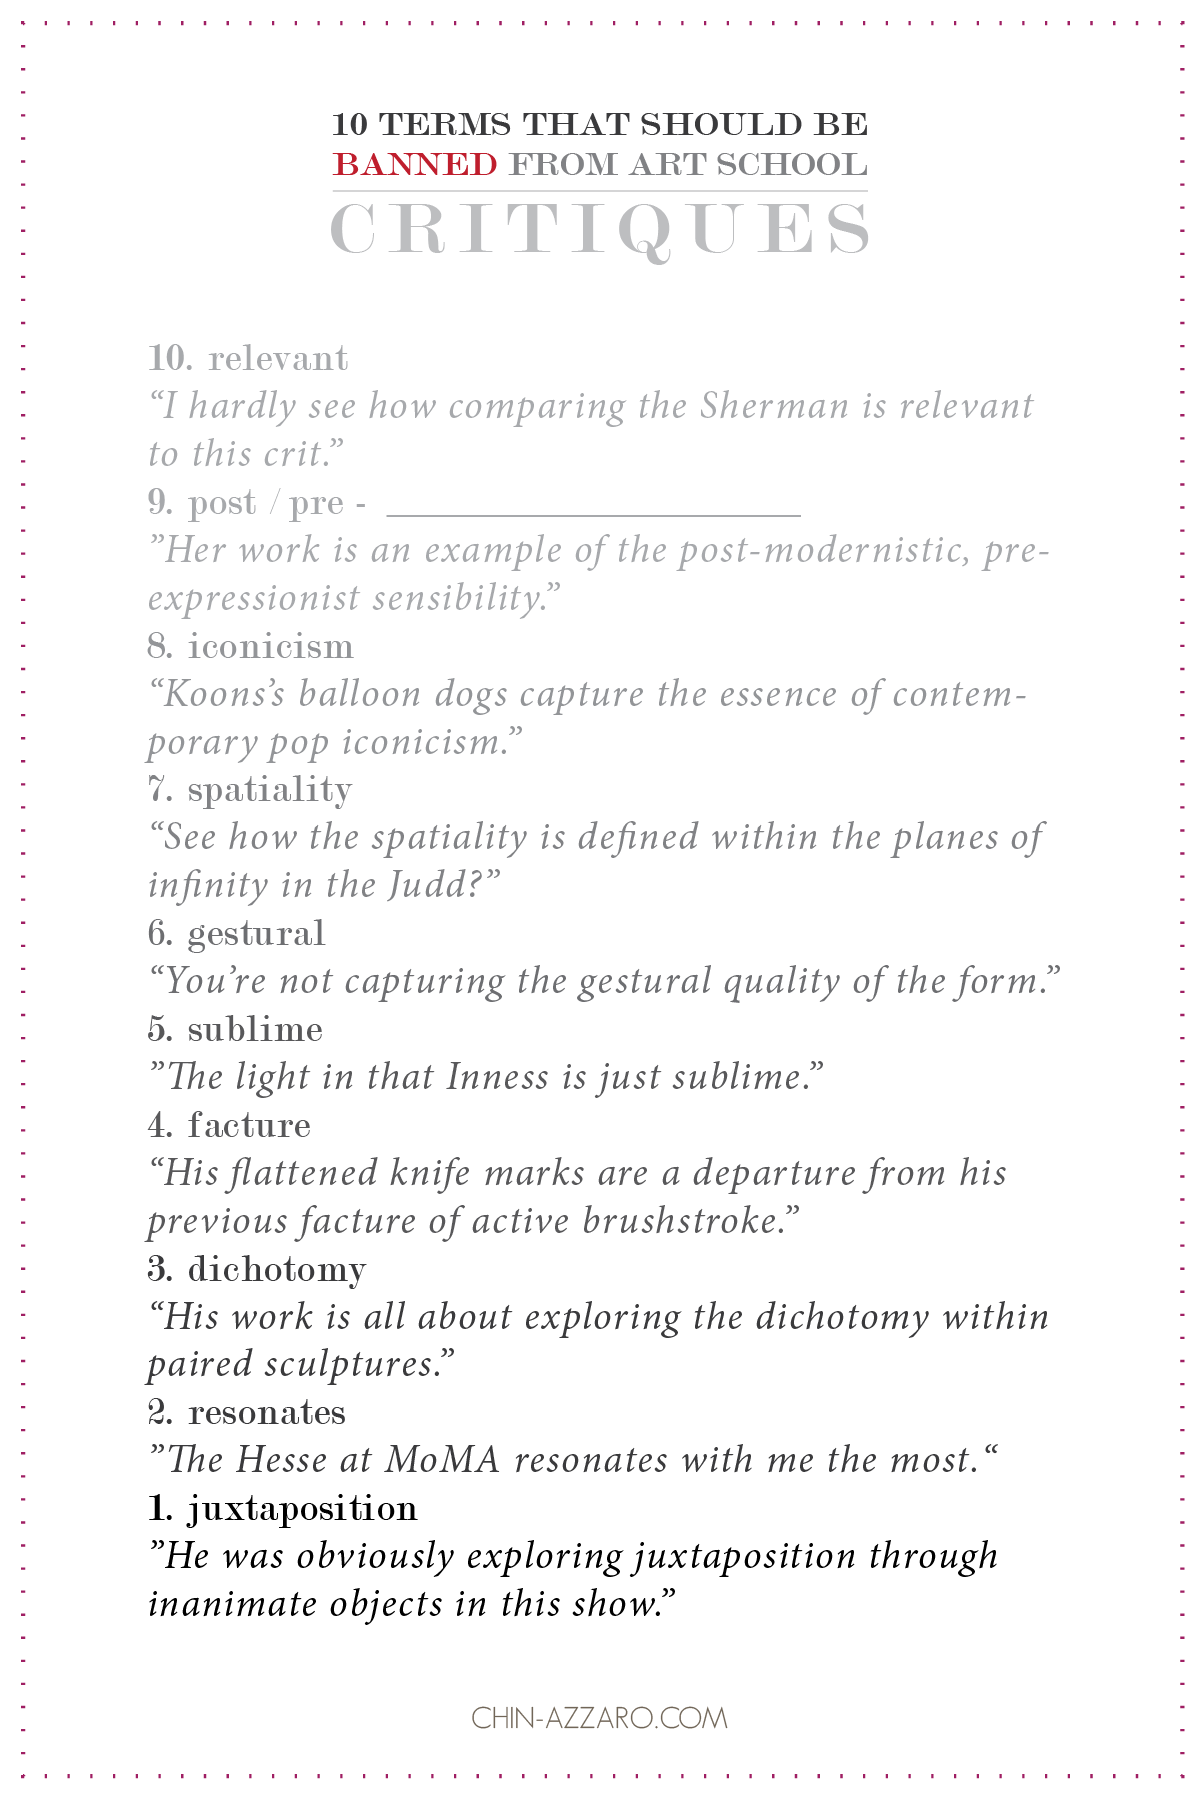 10 Terms That Should Be Banned From Art School Critiques